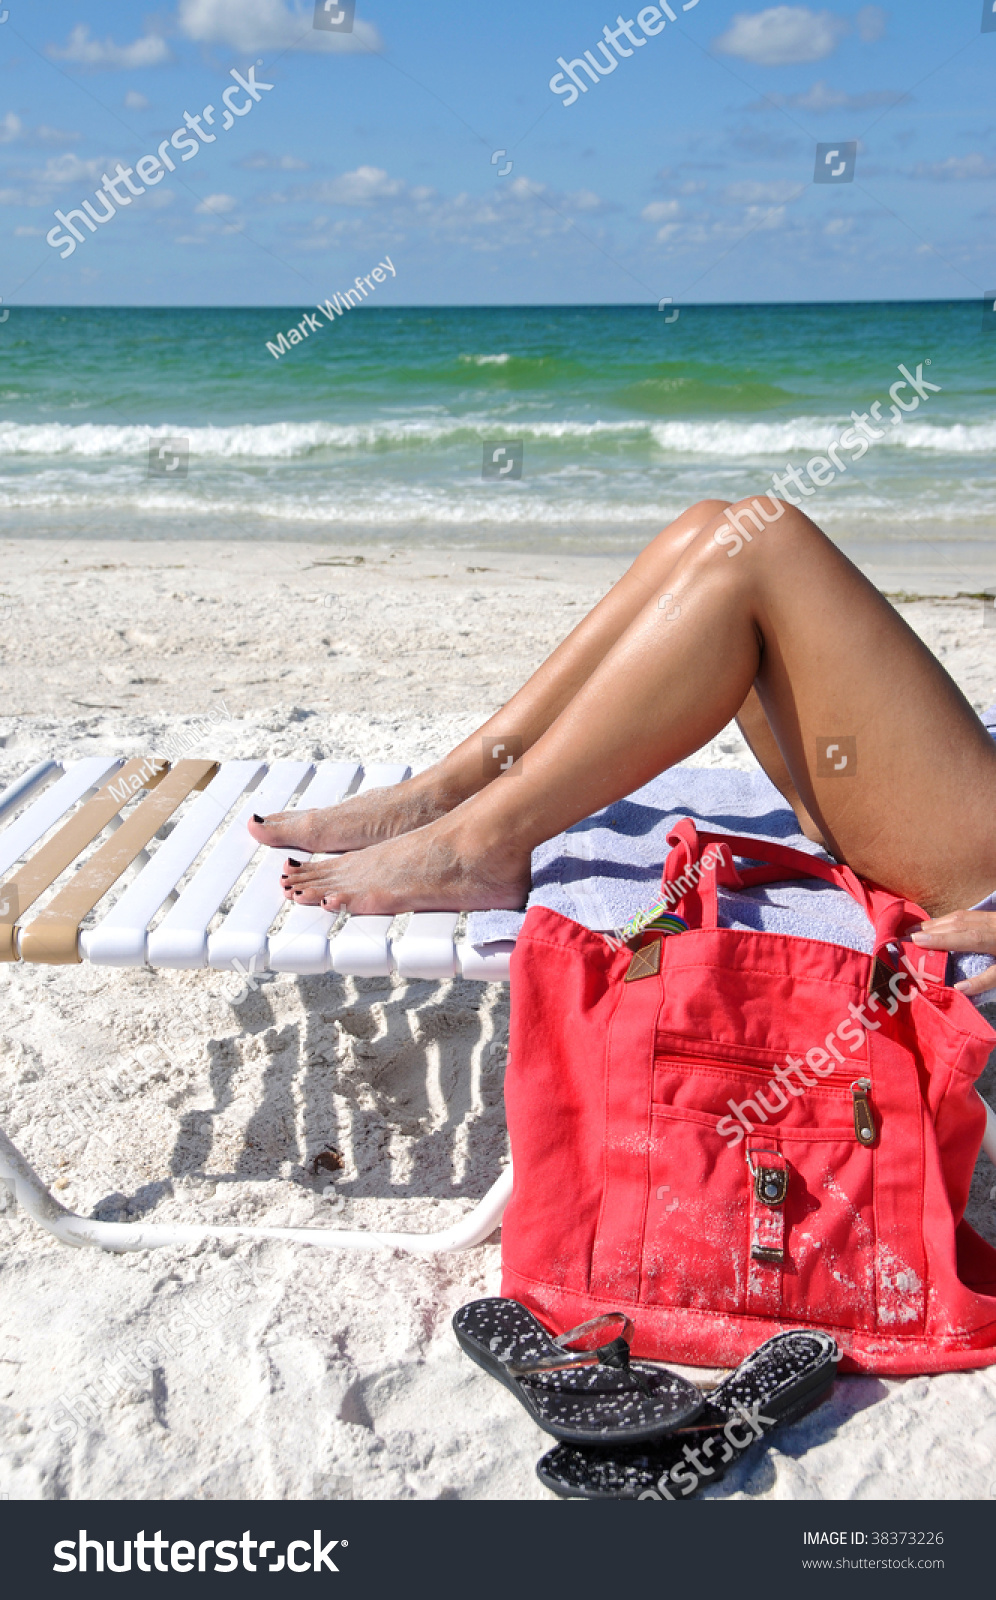 stock-photo-woman-sunbathing-on-the-beac